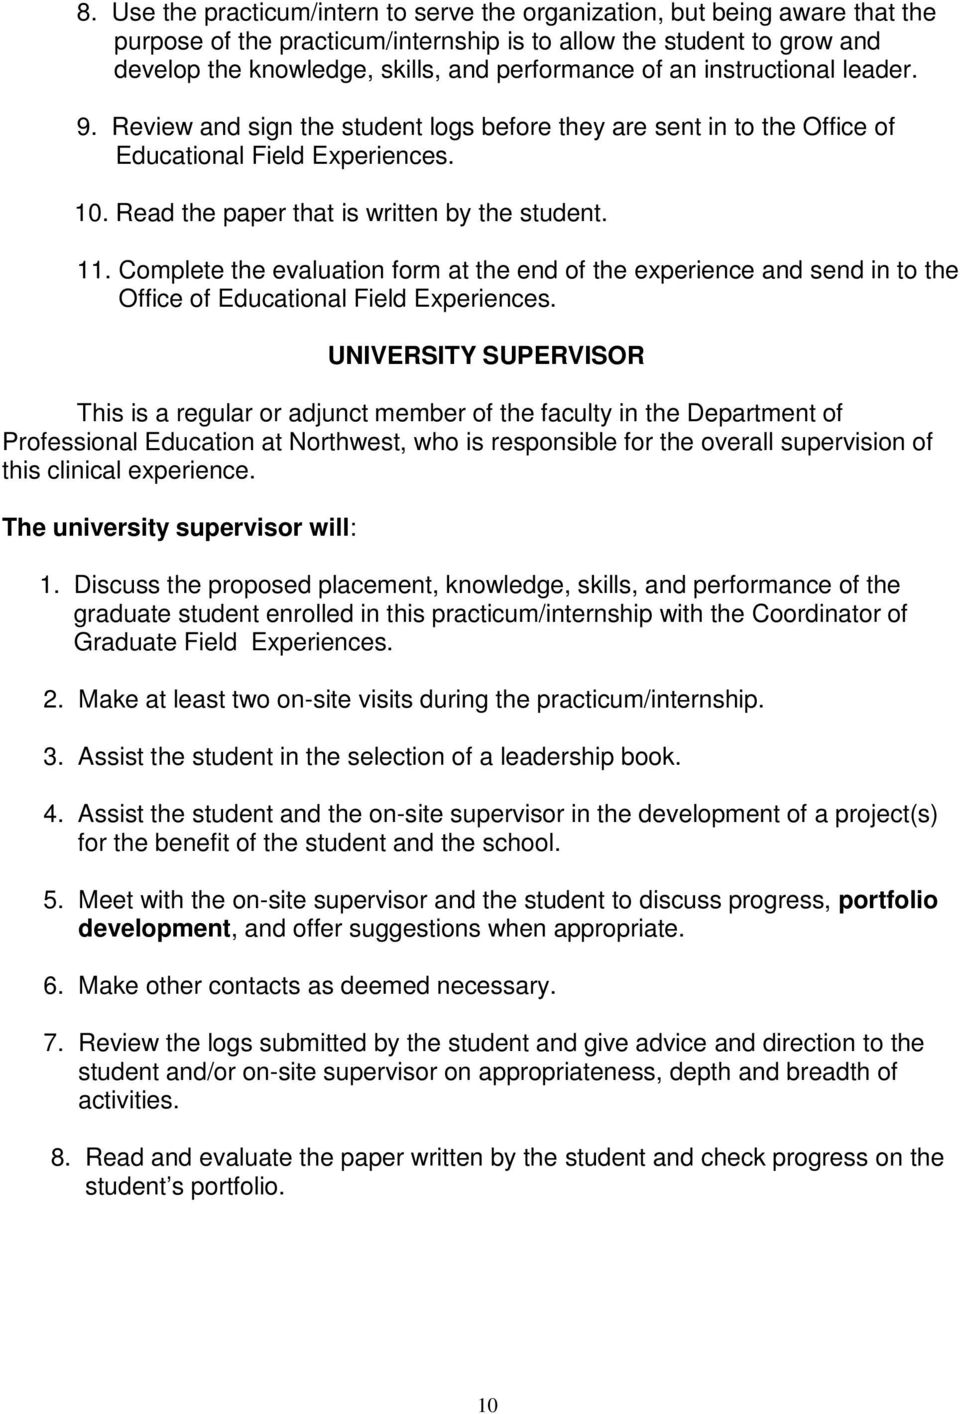 Complete the evaluation form at the end of the experience and send in to the Office of Educational Field Experiences.